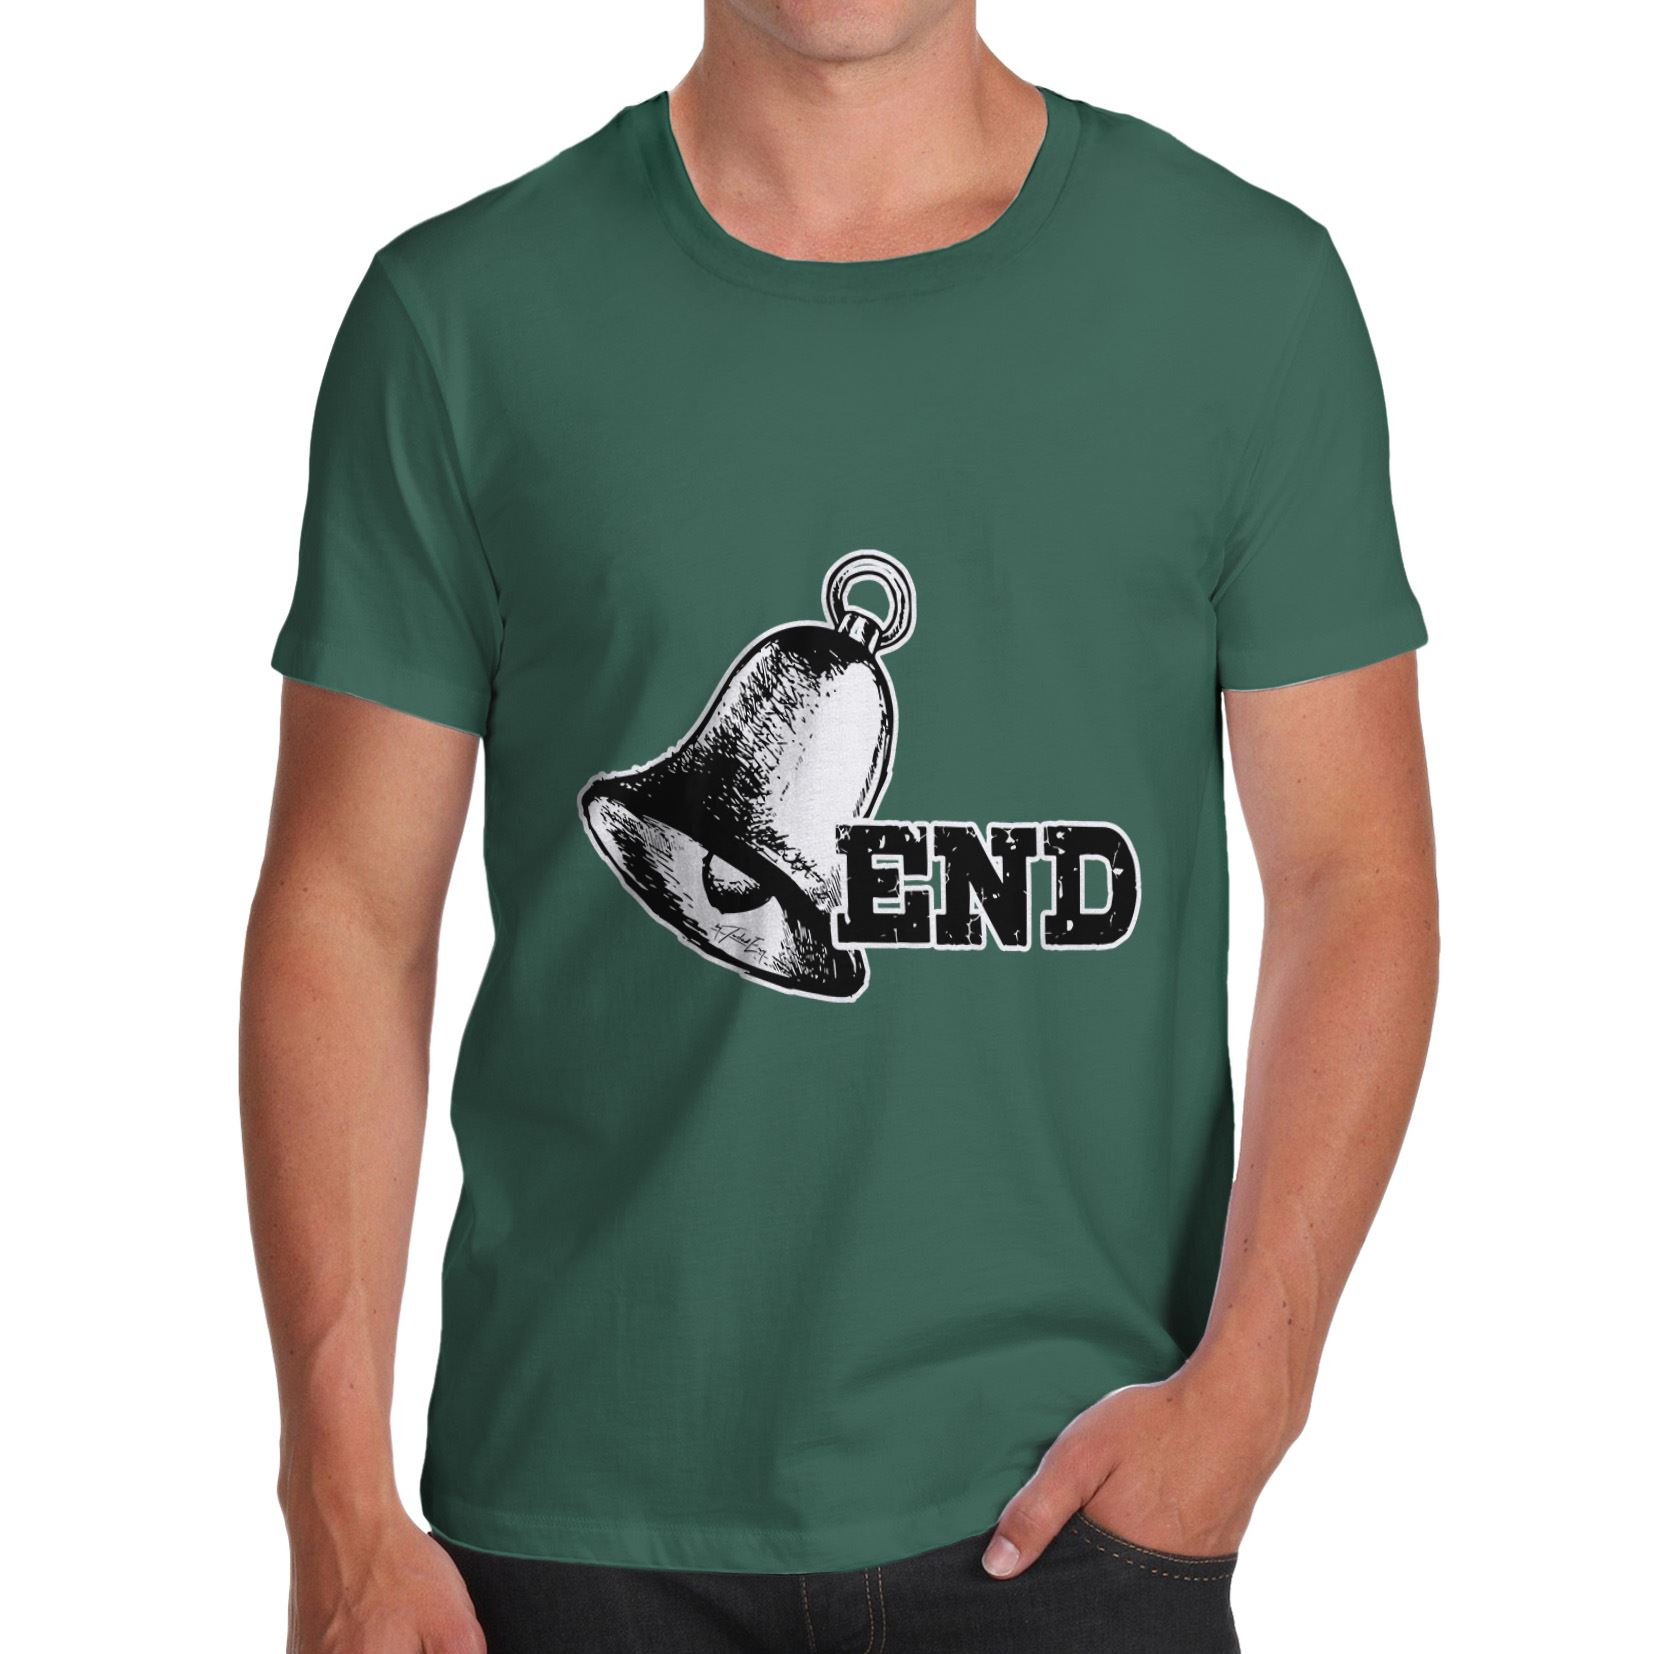 Twisted Envy Bell End Funny Pun Rude Men/'s Funny T-Shirt